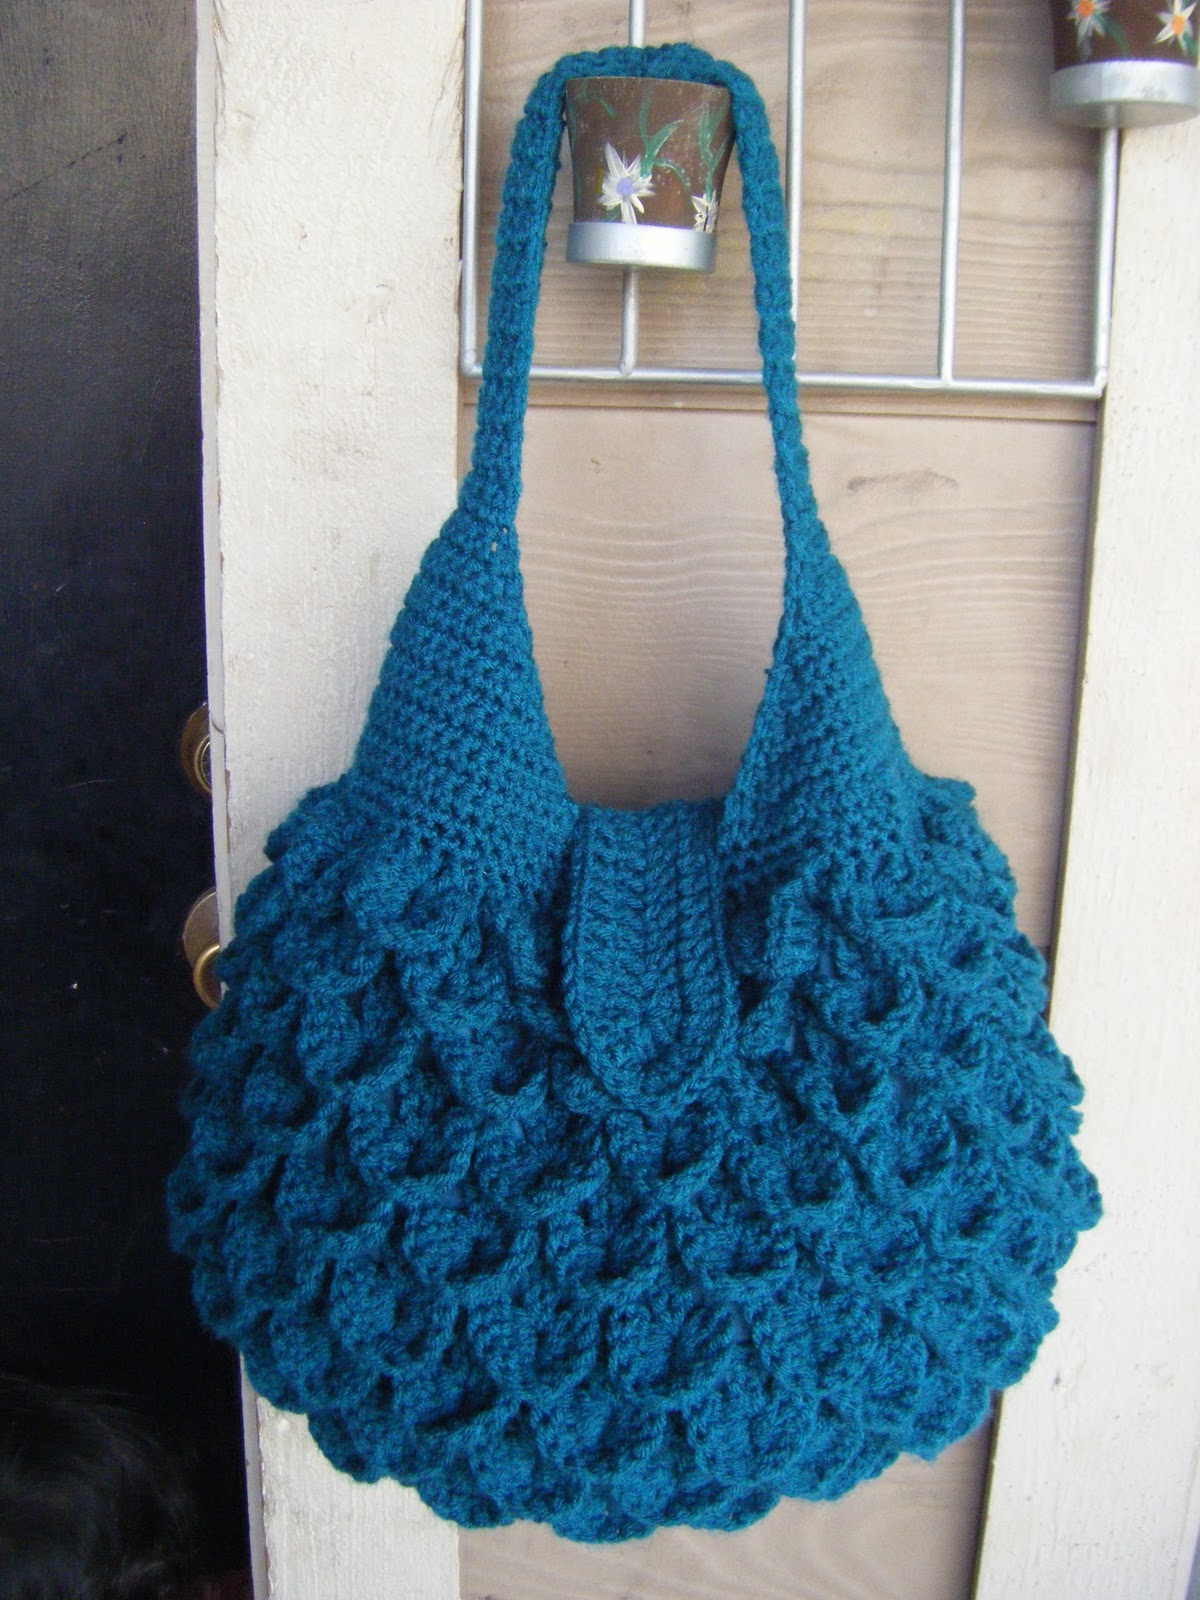 FREE THREAD CROCHET PURSE PATTERNS – Easy Crochet Patterns